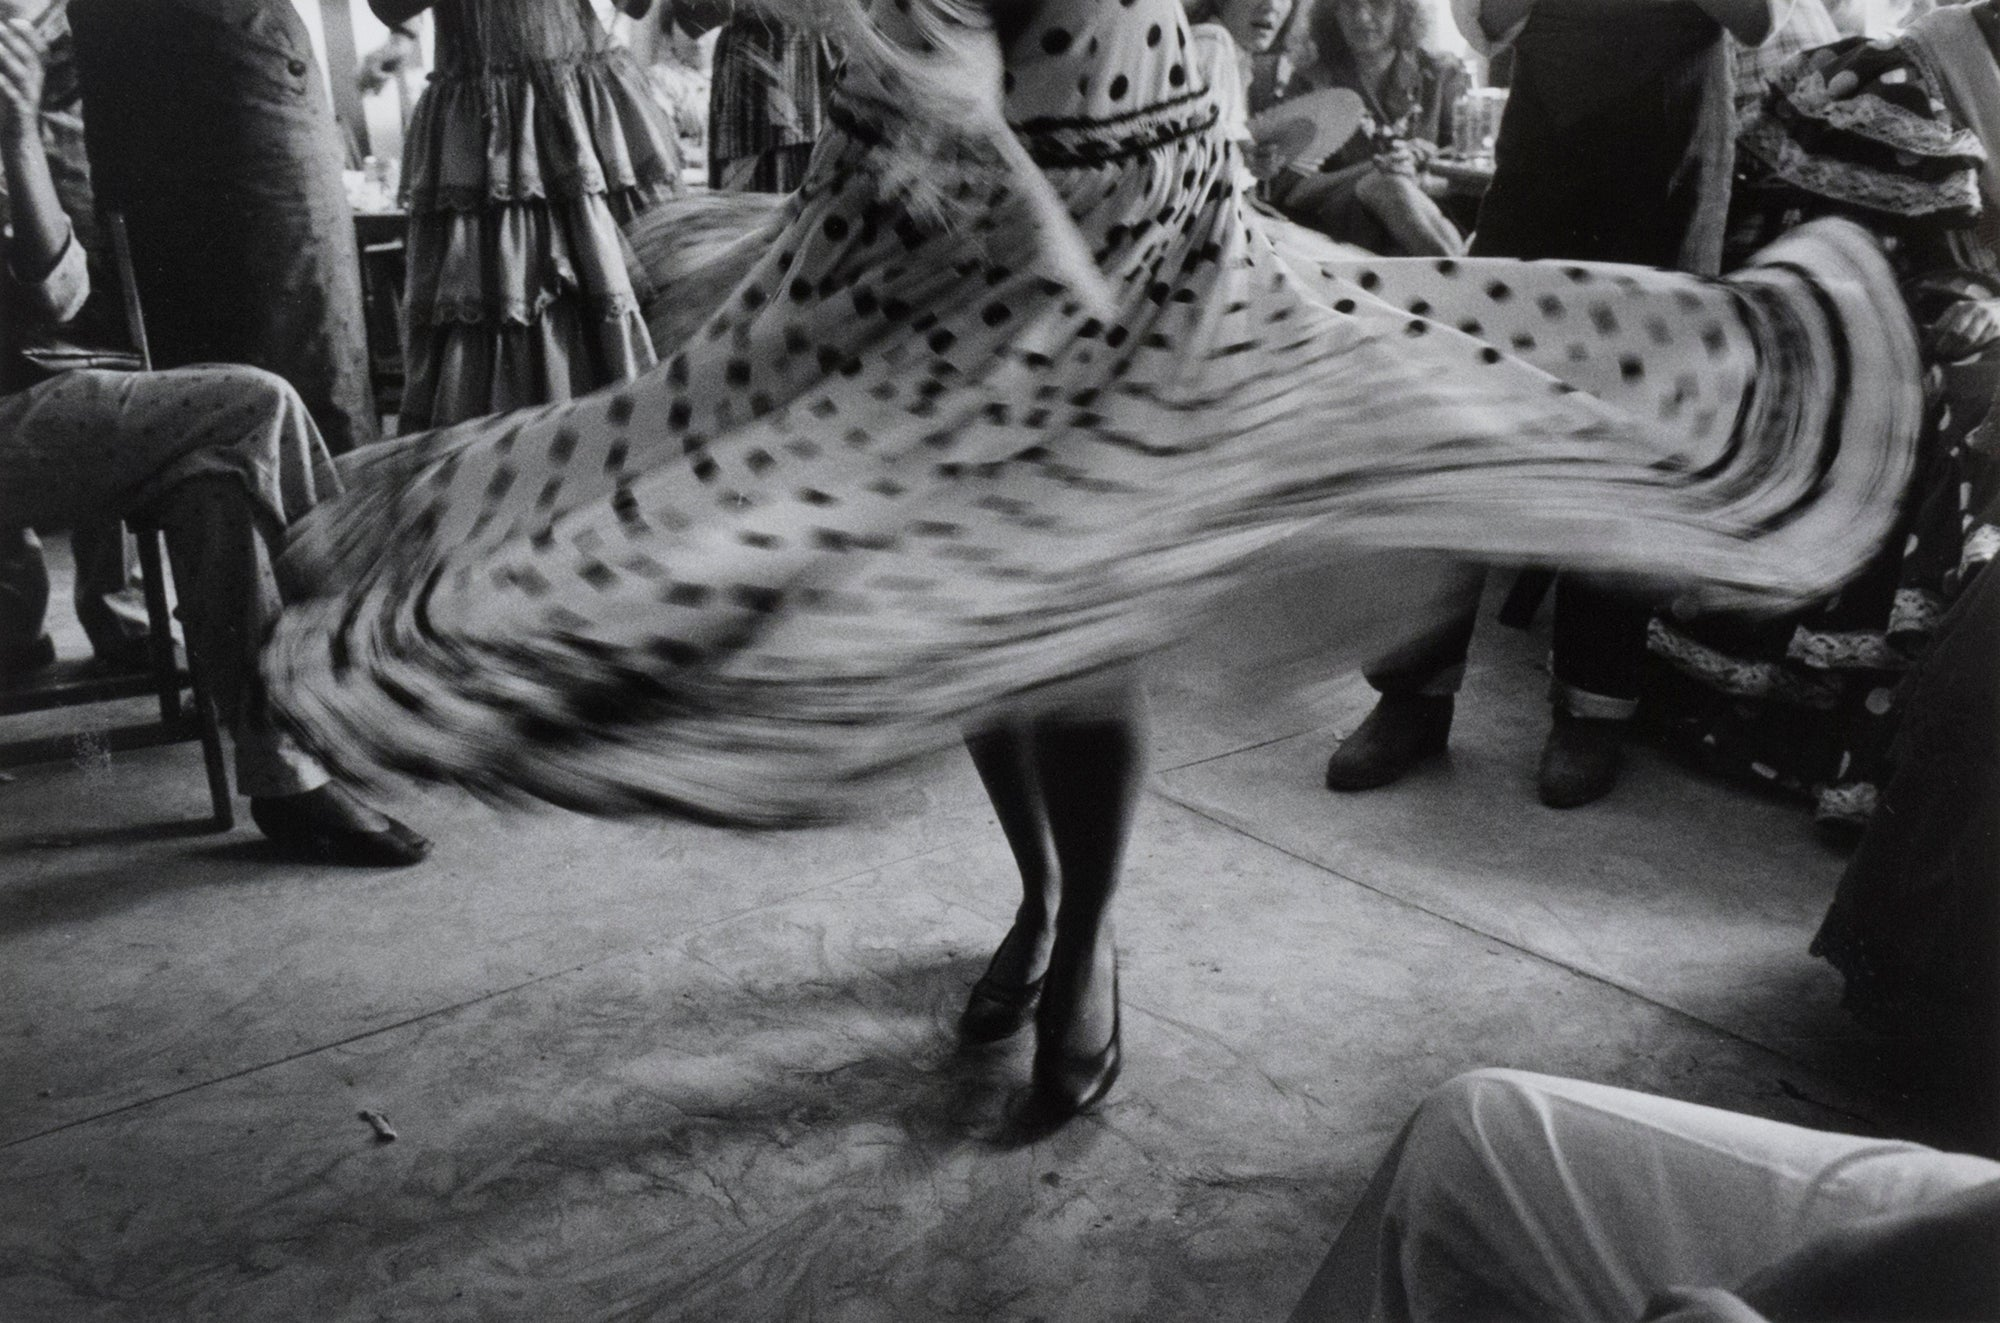 Dancer's skirt at a fair, Seville, Spain - Inge Morath | FFOTO